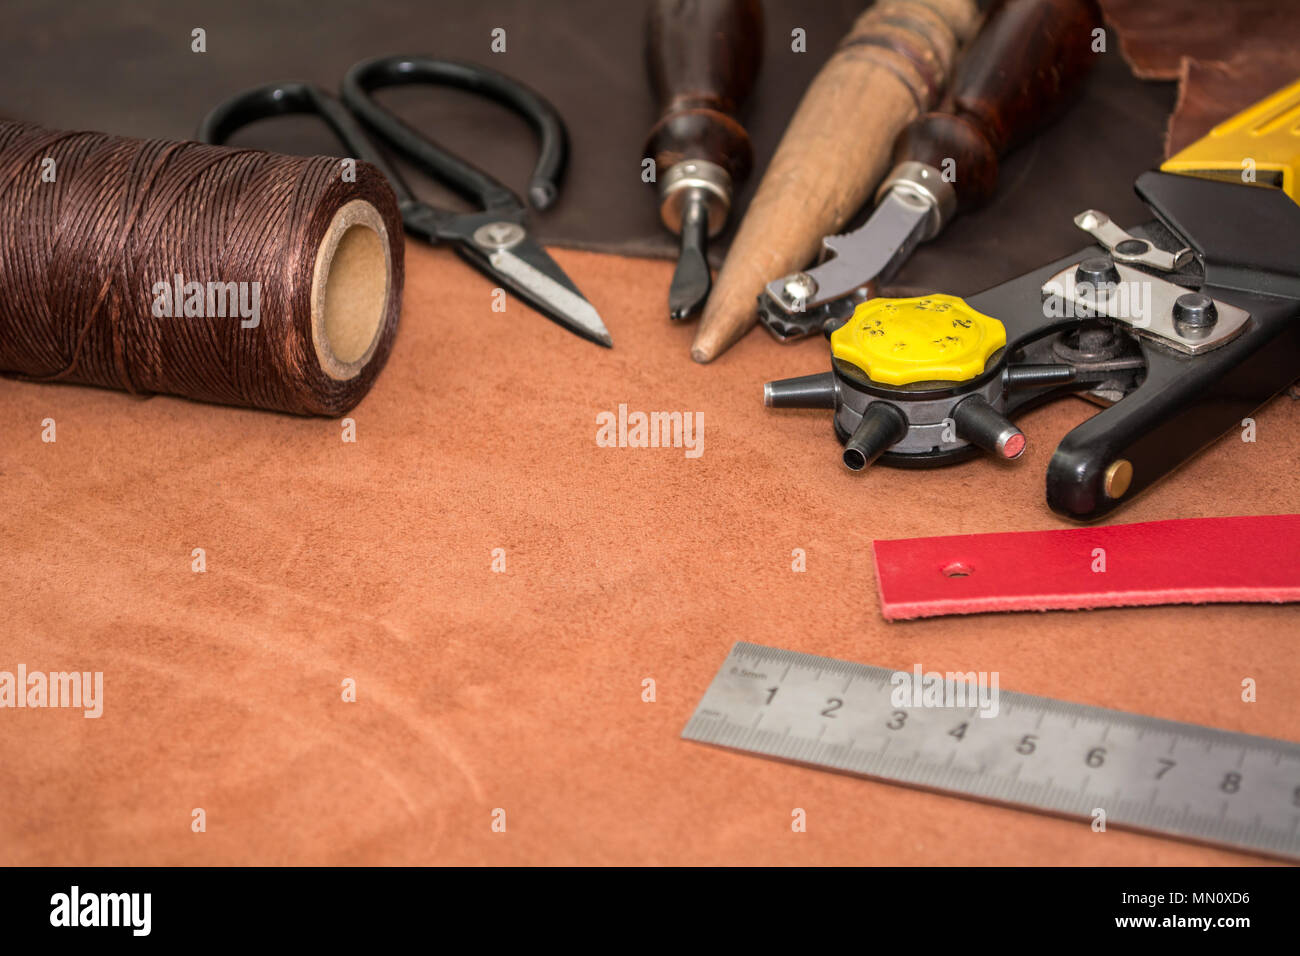 Tools for crafting and pieces of brown leather. Manufacture of leather goods. - Stock Image